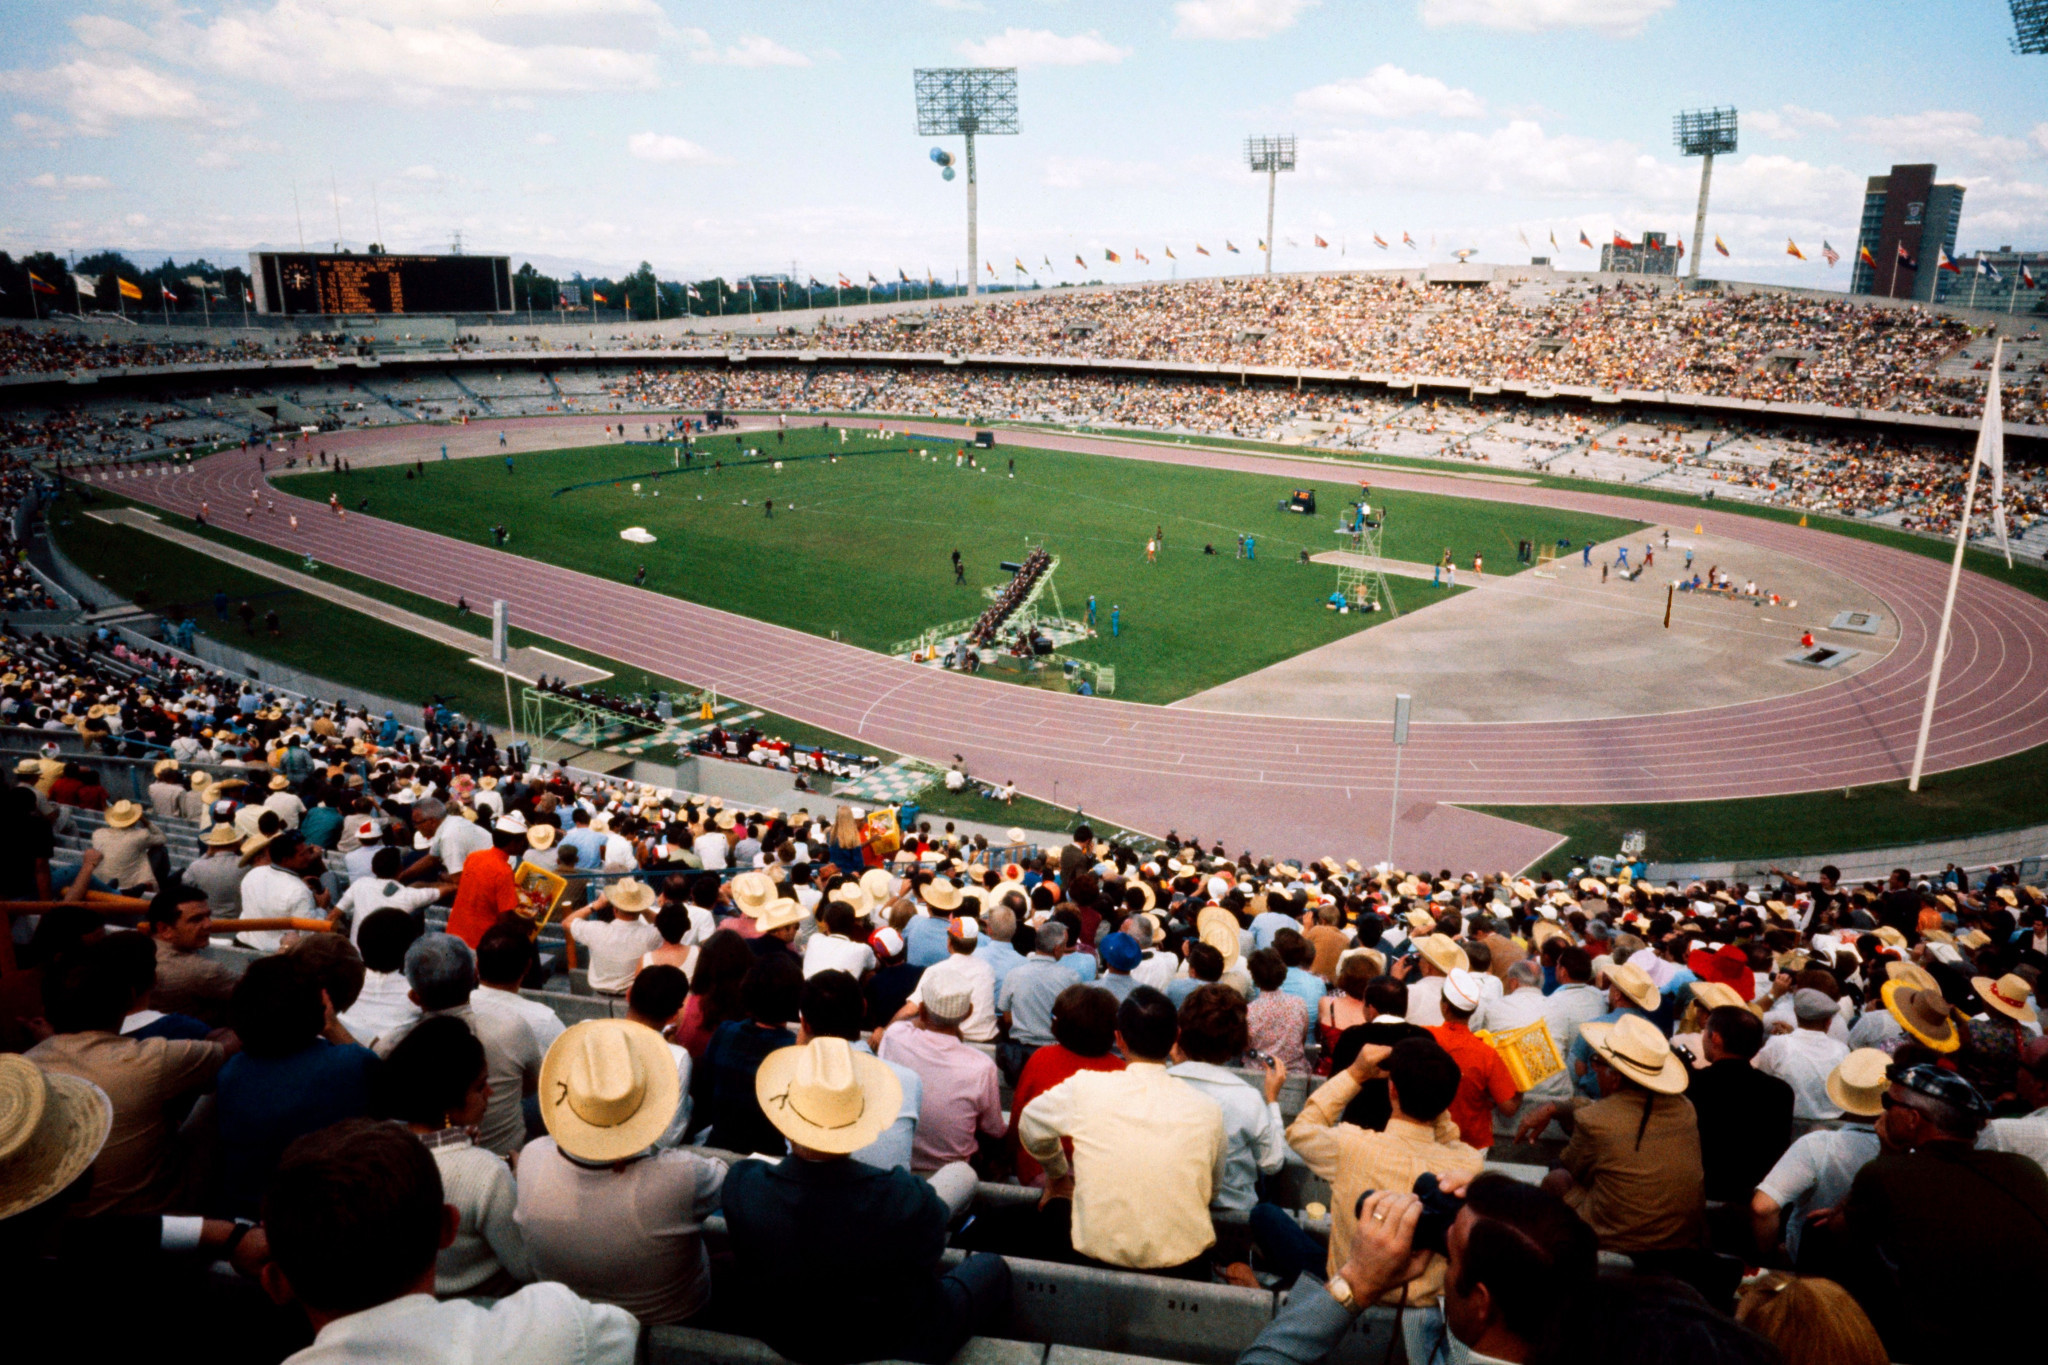 Heat was also an issue at the 1968 Olympic Games in Mexico ©Getty Images